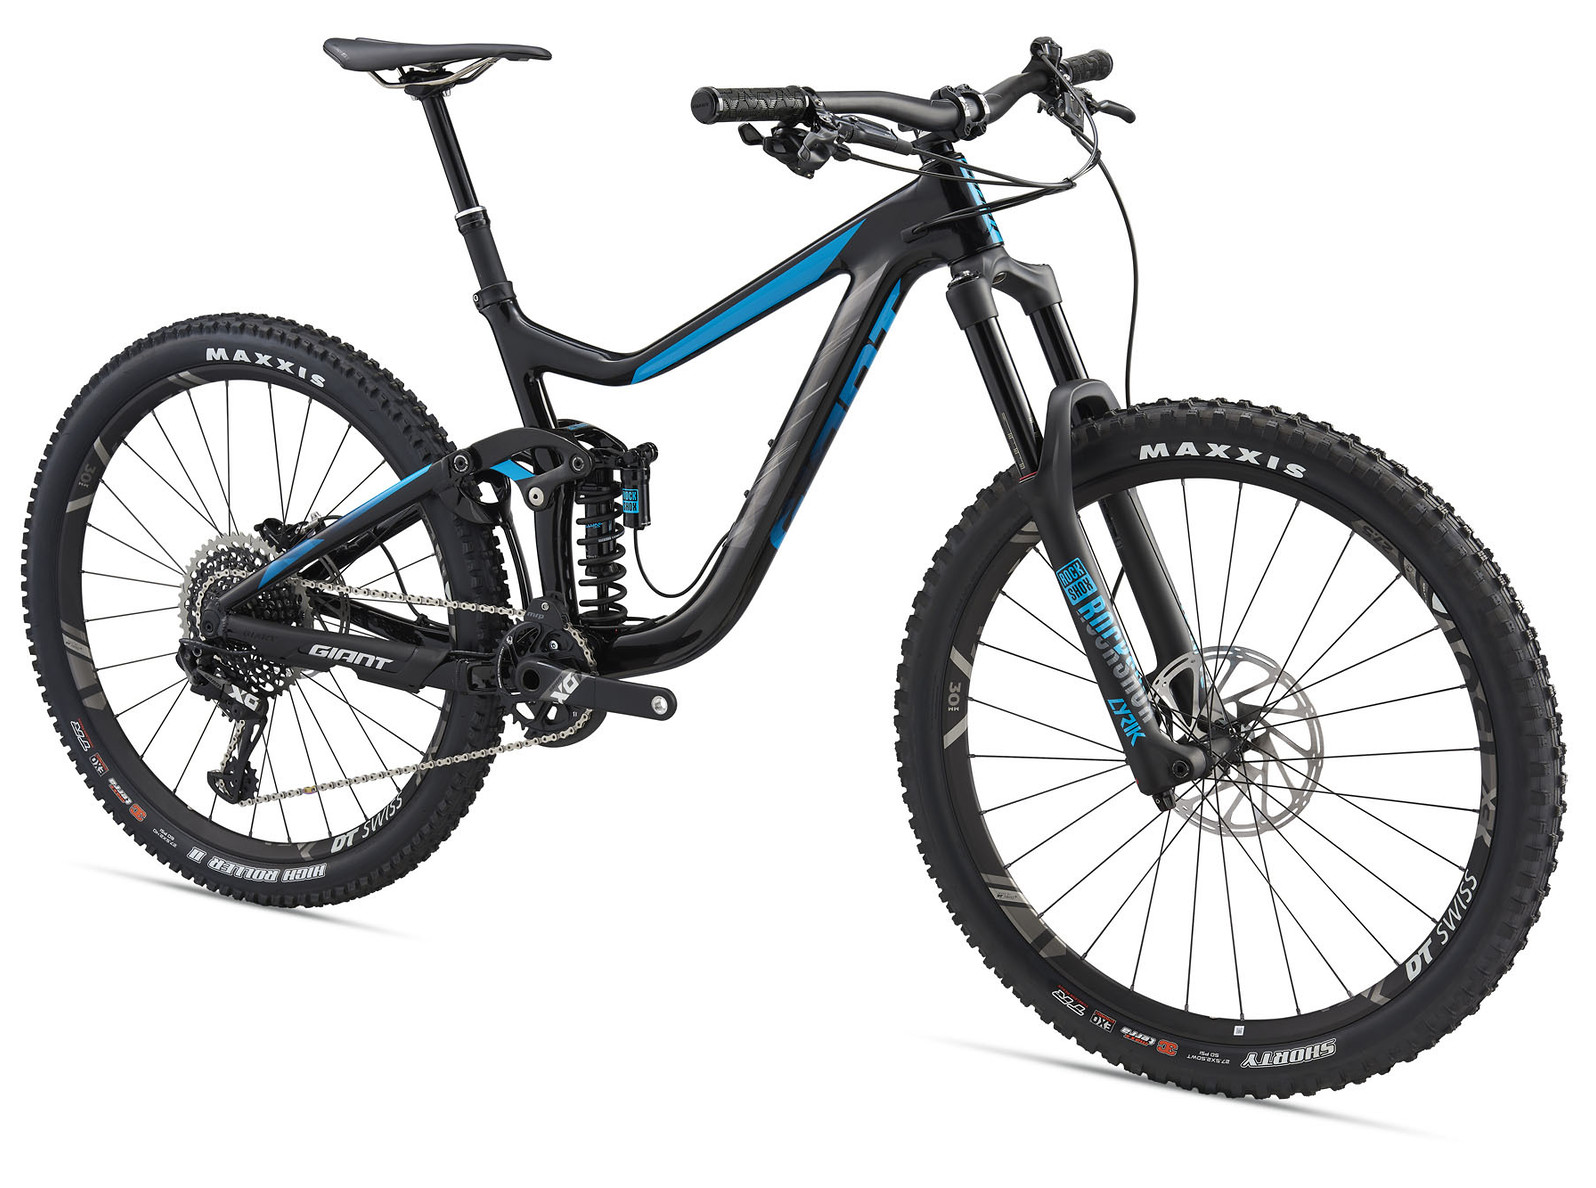 Reviews Com Product Reviews And Comparisons Of 2018 >> 2018 Giant Reign Advanced 0 Bike - Reviews, Comparisons, Specs - Mountain Bikes - Vital MTB